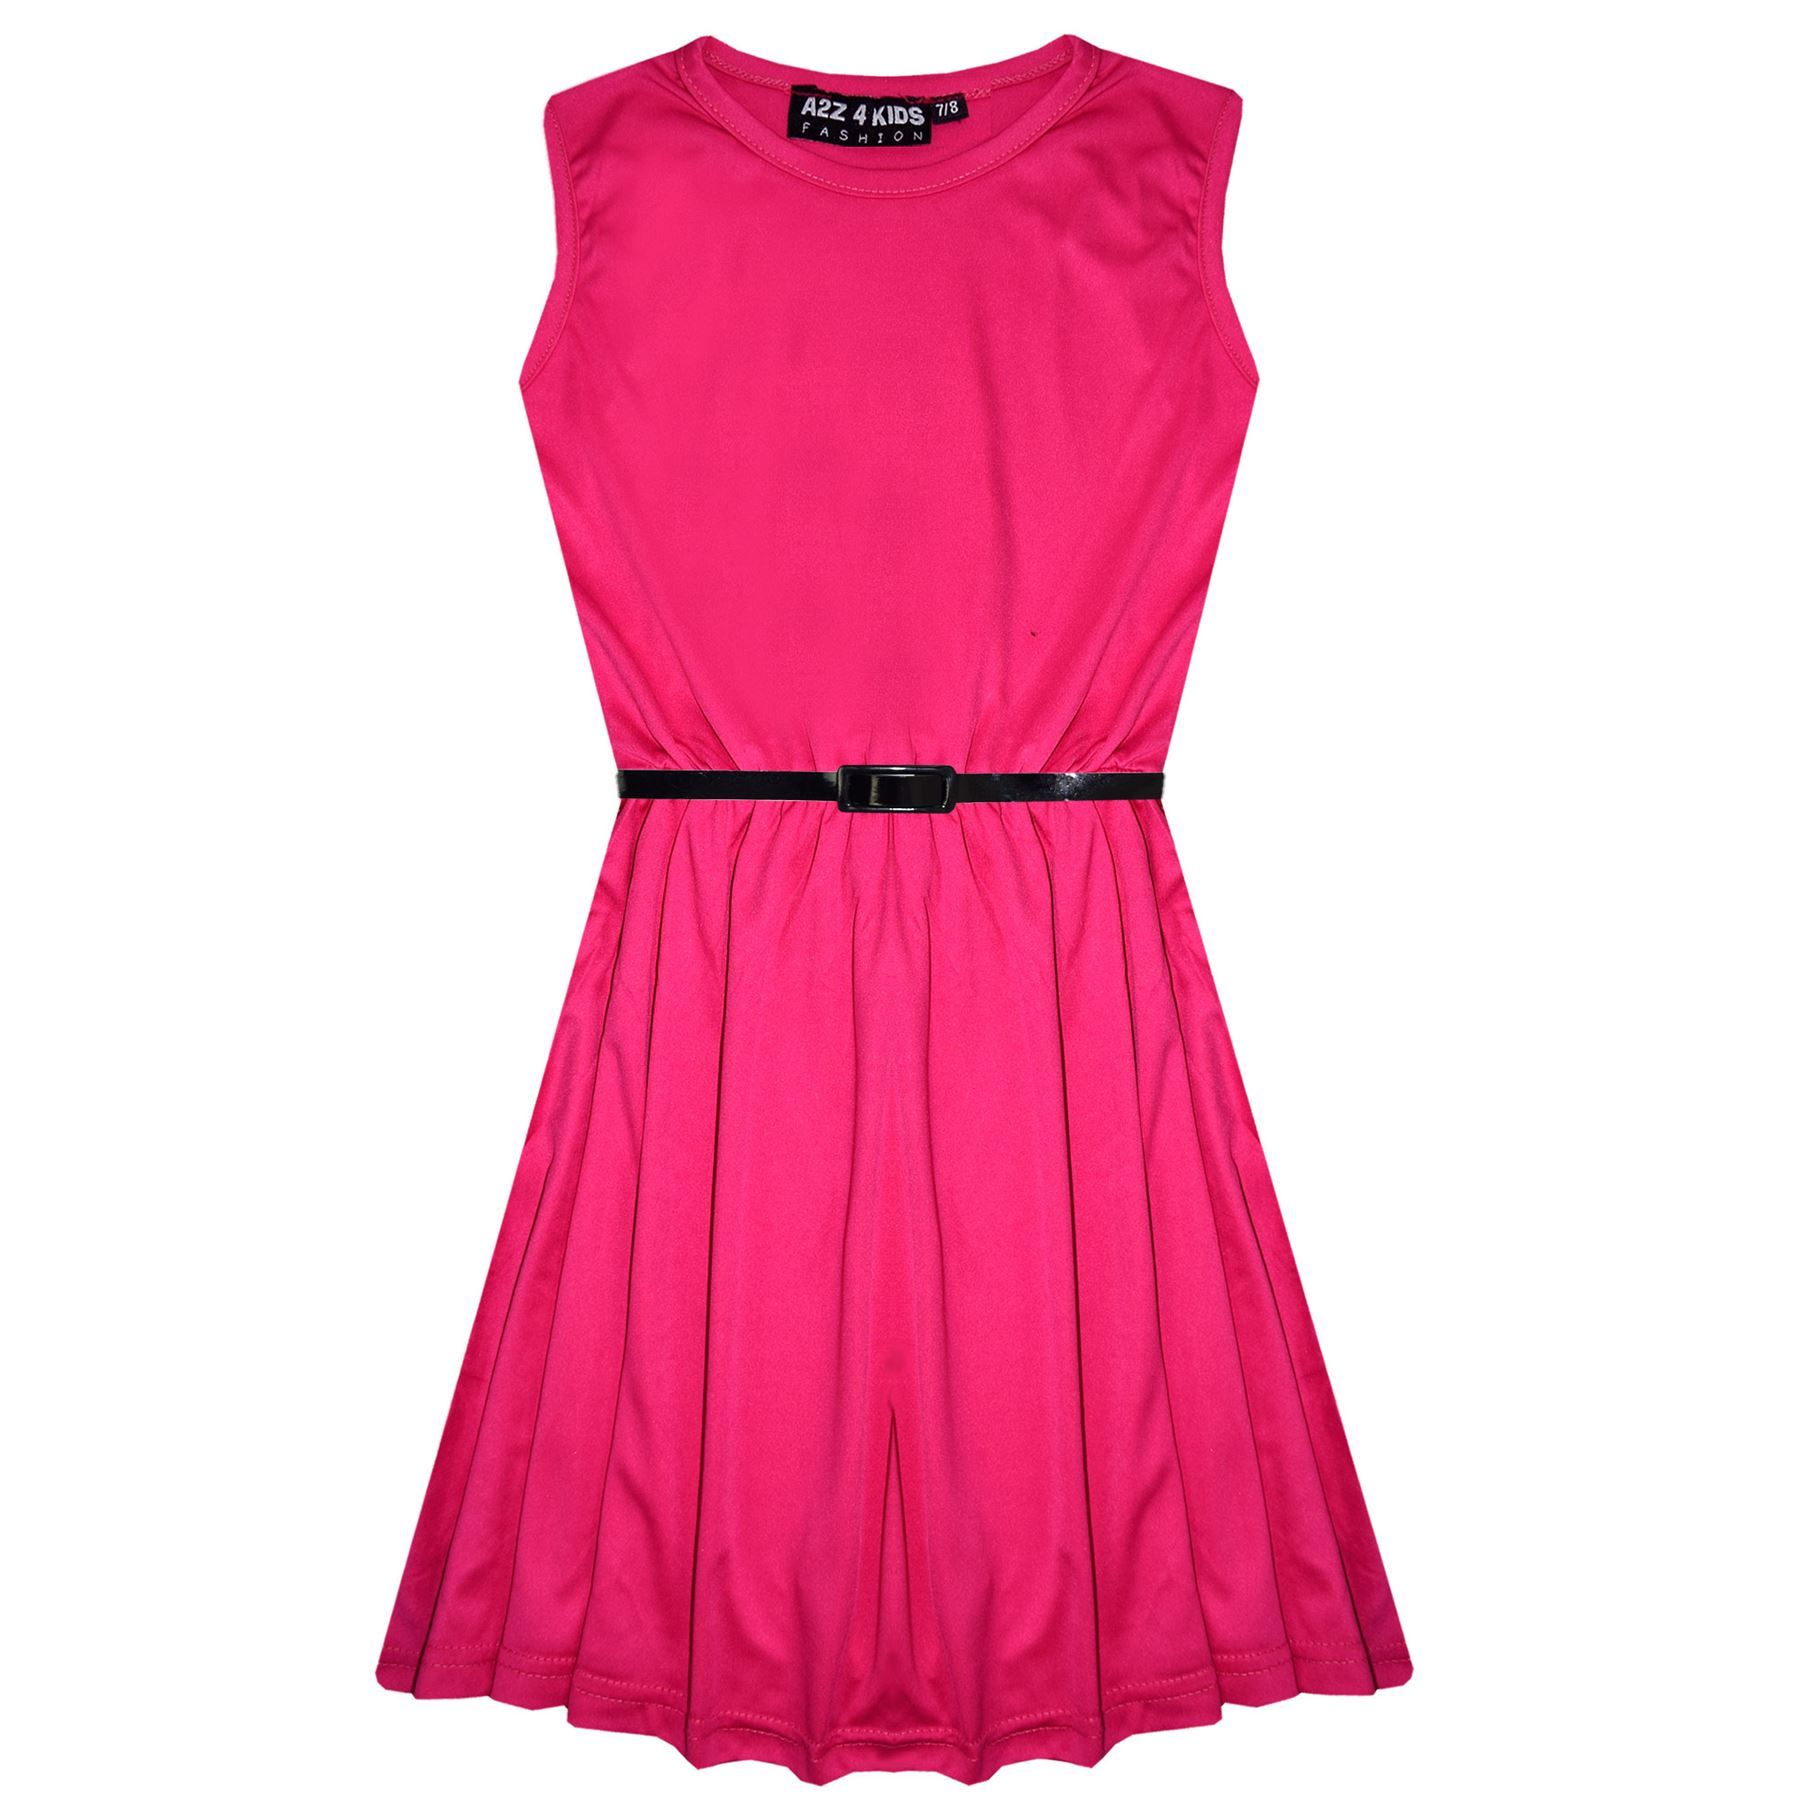 Girls-Skater-Dress-Kids-Party-Dresses-With-Free-Belt-5-6-7-8-9-10-11-12-13-Years miniatuur 20